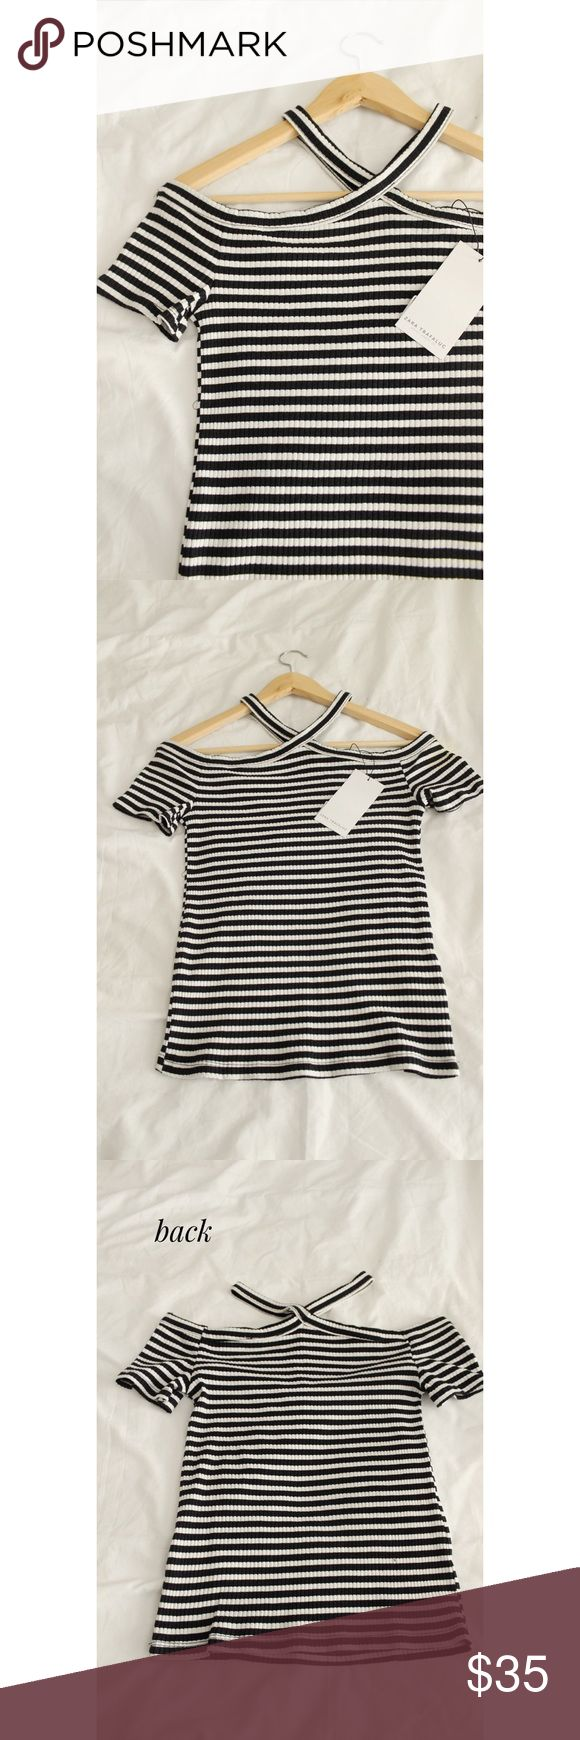 Zara 2017-2018 winter collection Ribbed knit top Zara Ribbed knit top off the shoulder  Adorable Zara Ribbed knit halter style top. Black and white striped. Crossed strap collar. From the 2017-2018 winter collection Brand NEW with Tag!  Size: Small (fits Medium perfectly too)  😊 PRICE FIRM 😊 Zara Tops